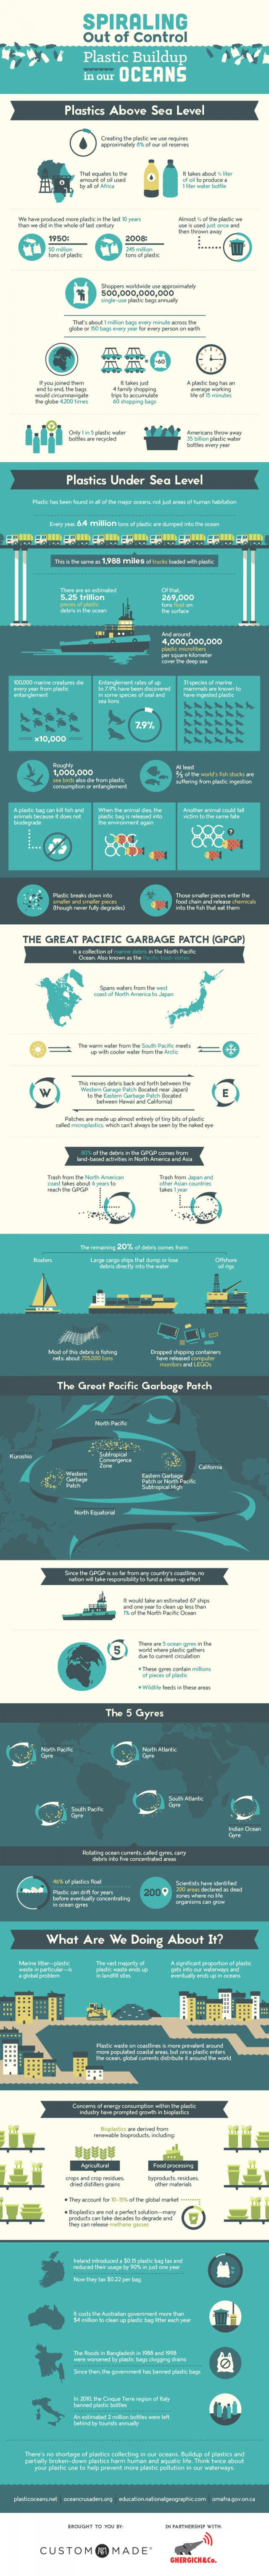 Plastic Buildup in our Oceans out of control